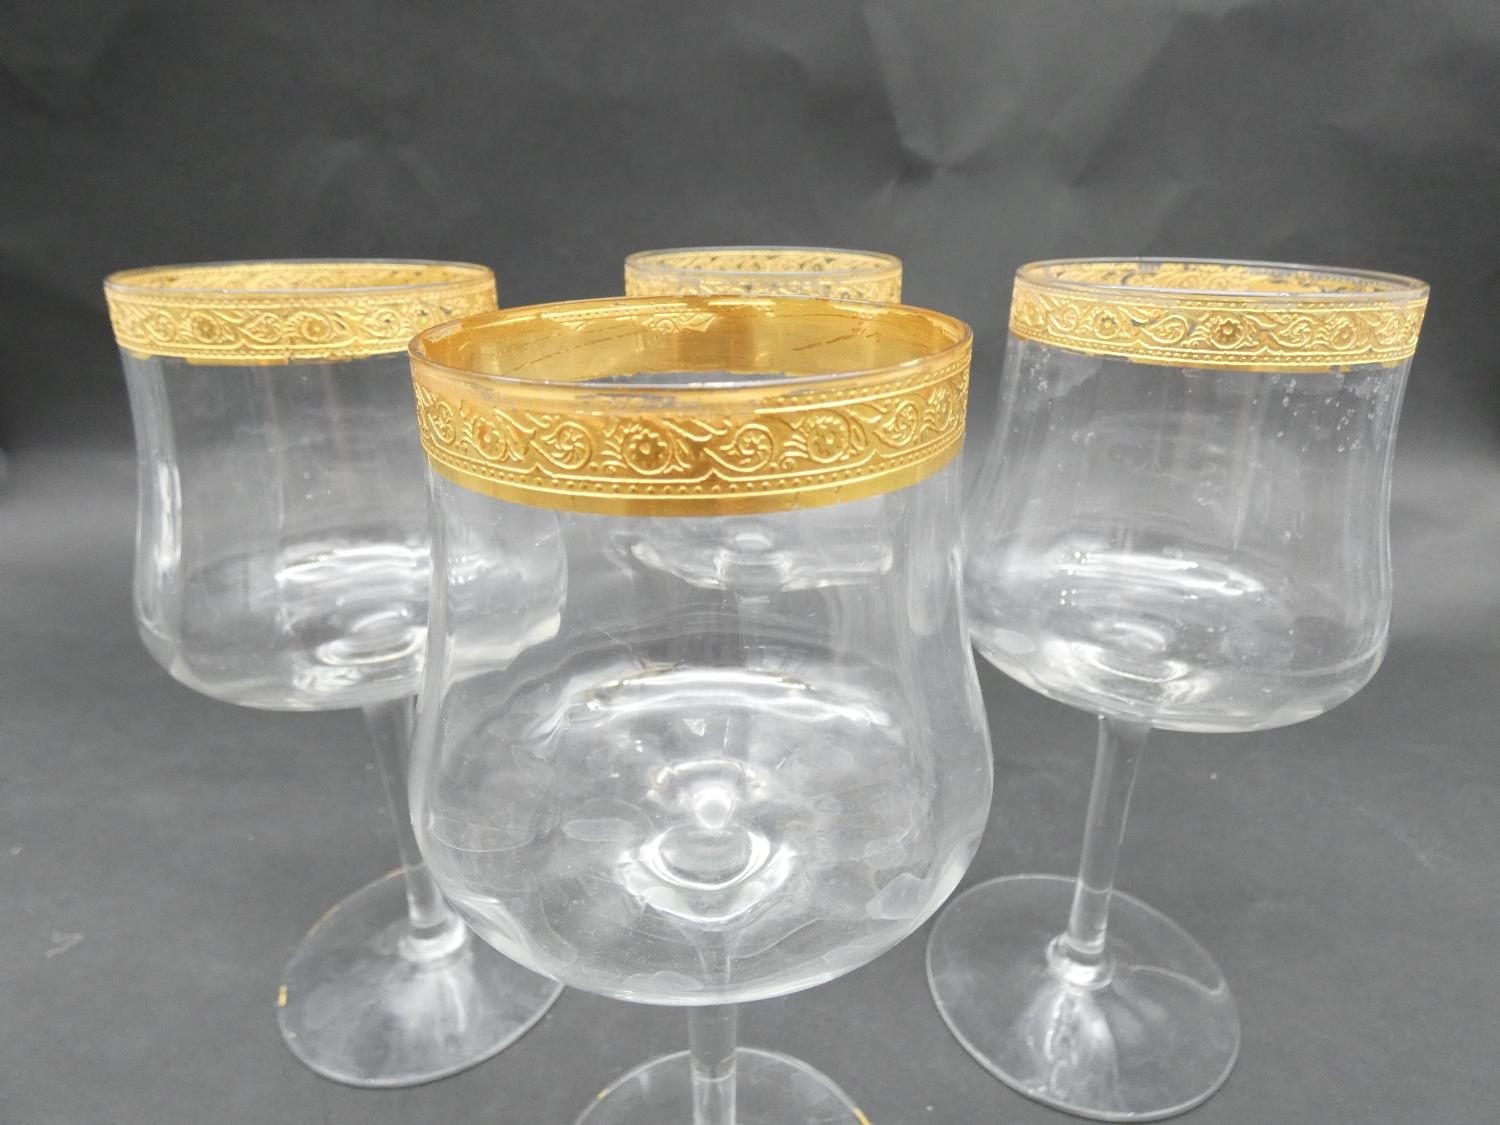 A collection of glasses. Including a set of five sherry glasses with gilded Orion symbols, along - Image 13 of 14